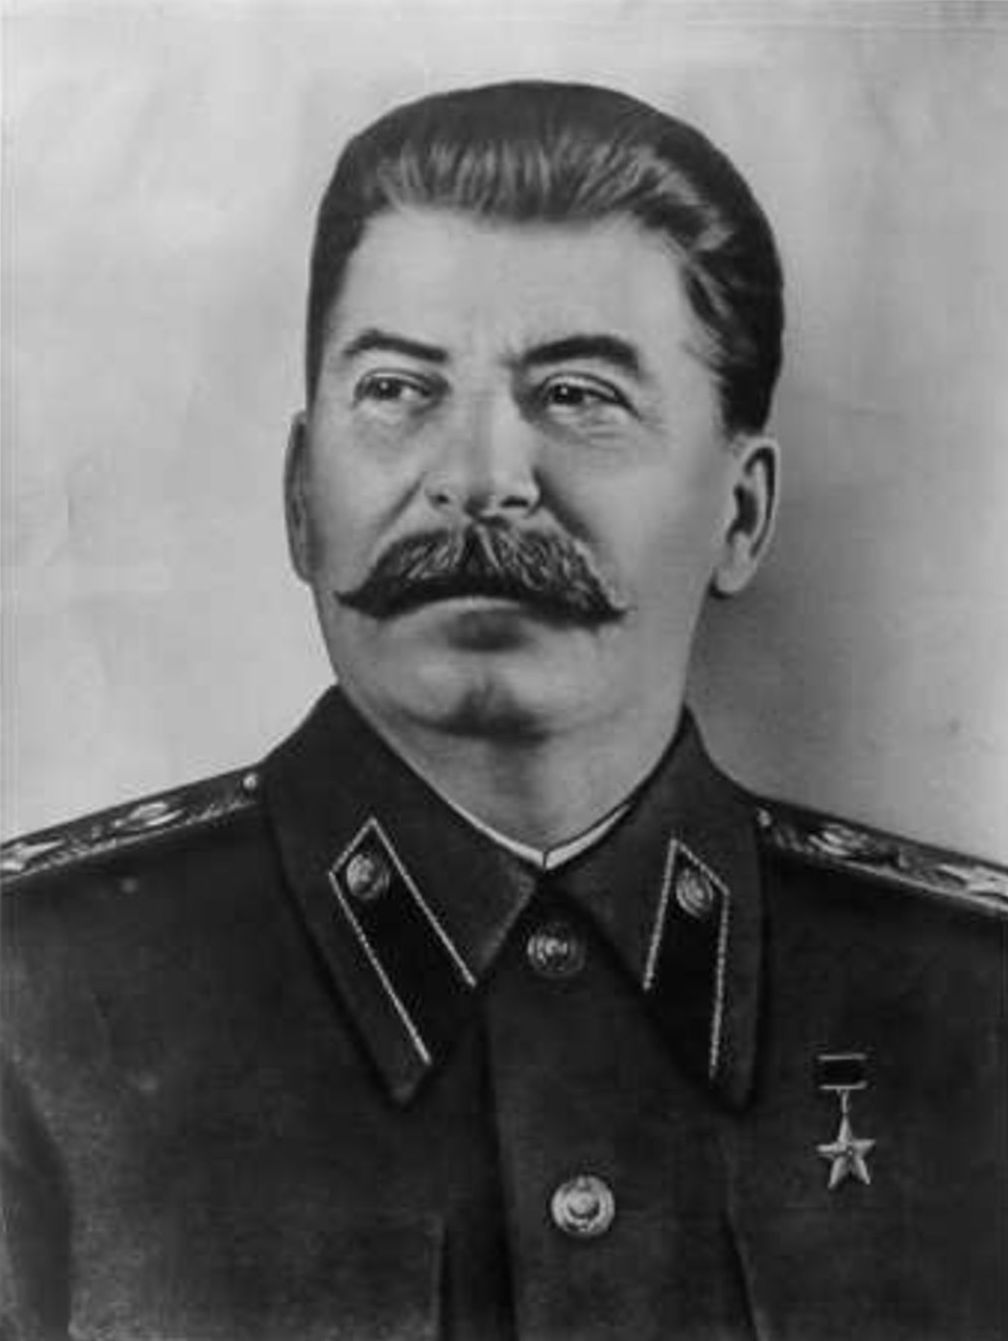 Exponat: Photo: Stalin, Josef W.